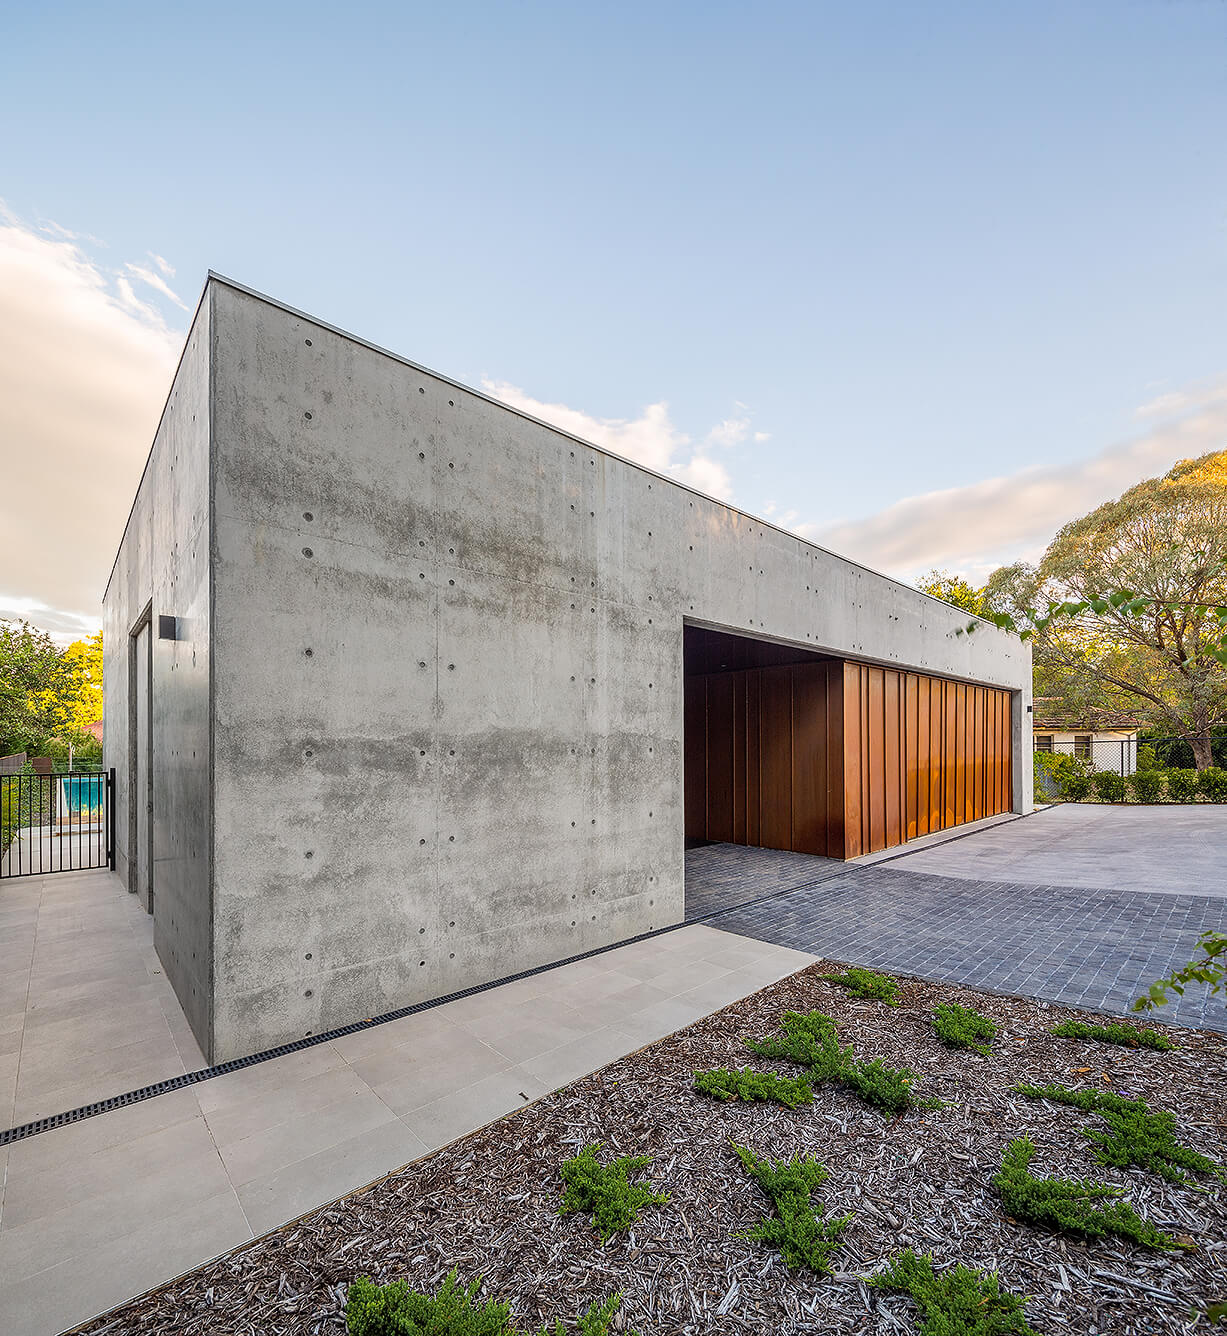 off form concrete house facade with rusted garage door